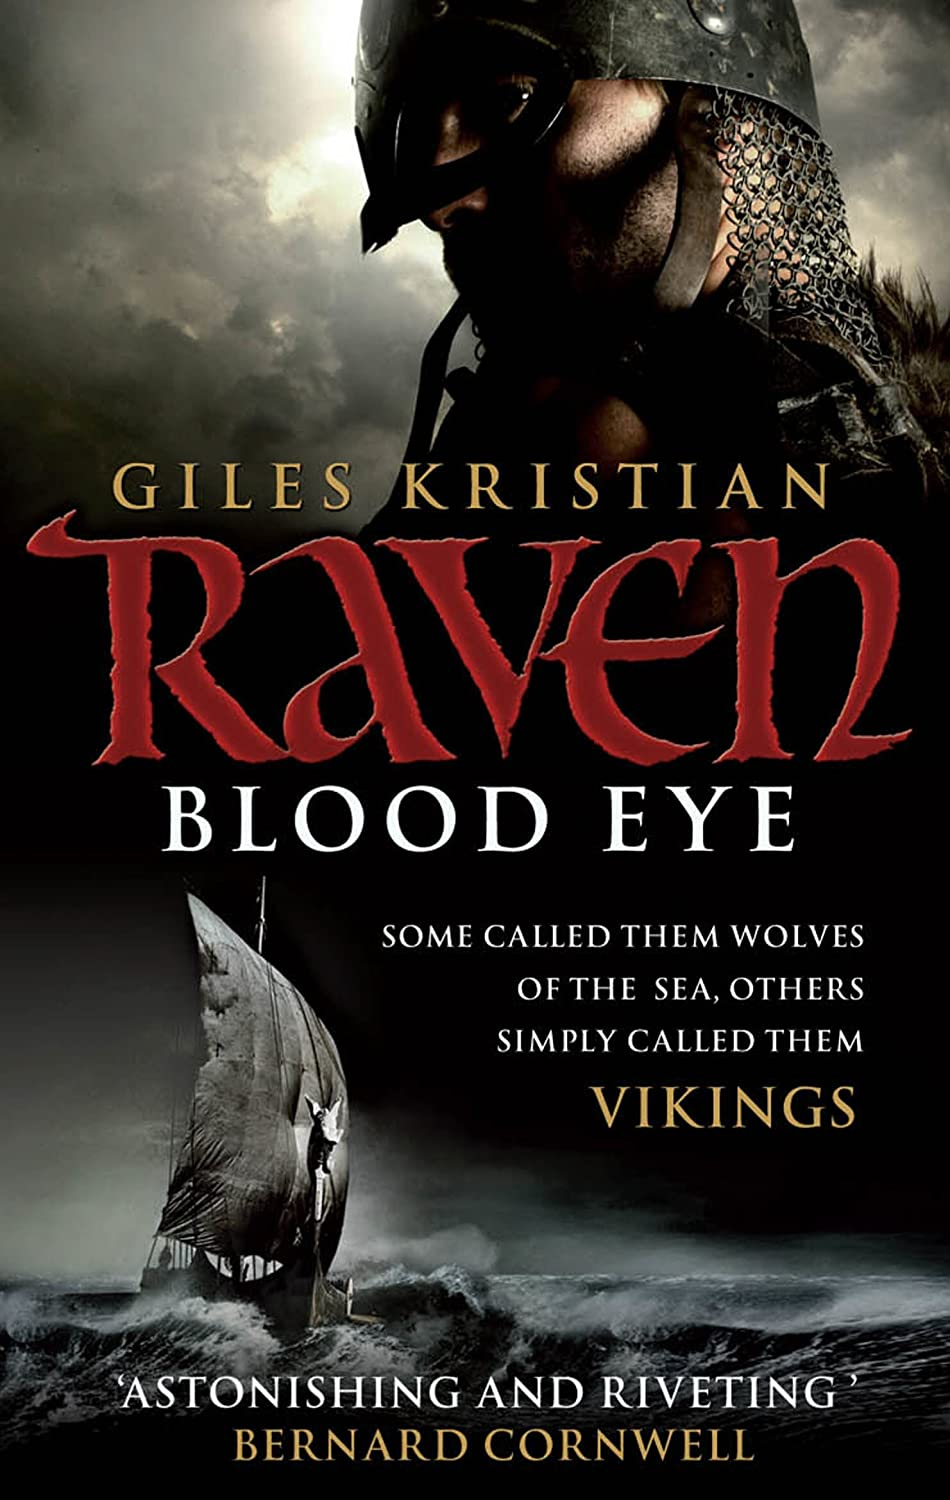 http://fantasyguide.stormthecastle.com/viking/the-raven-series.htm